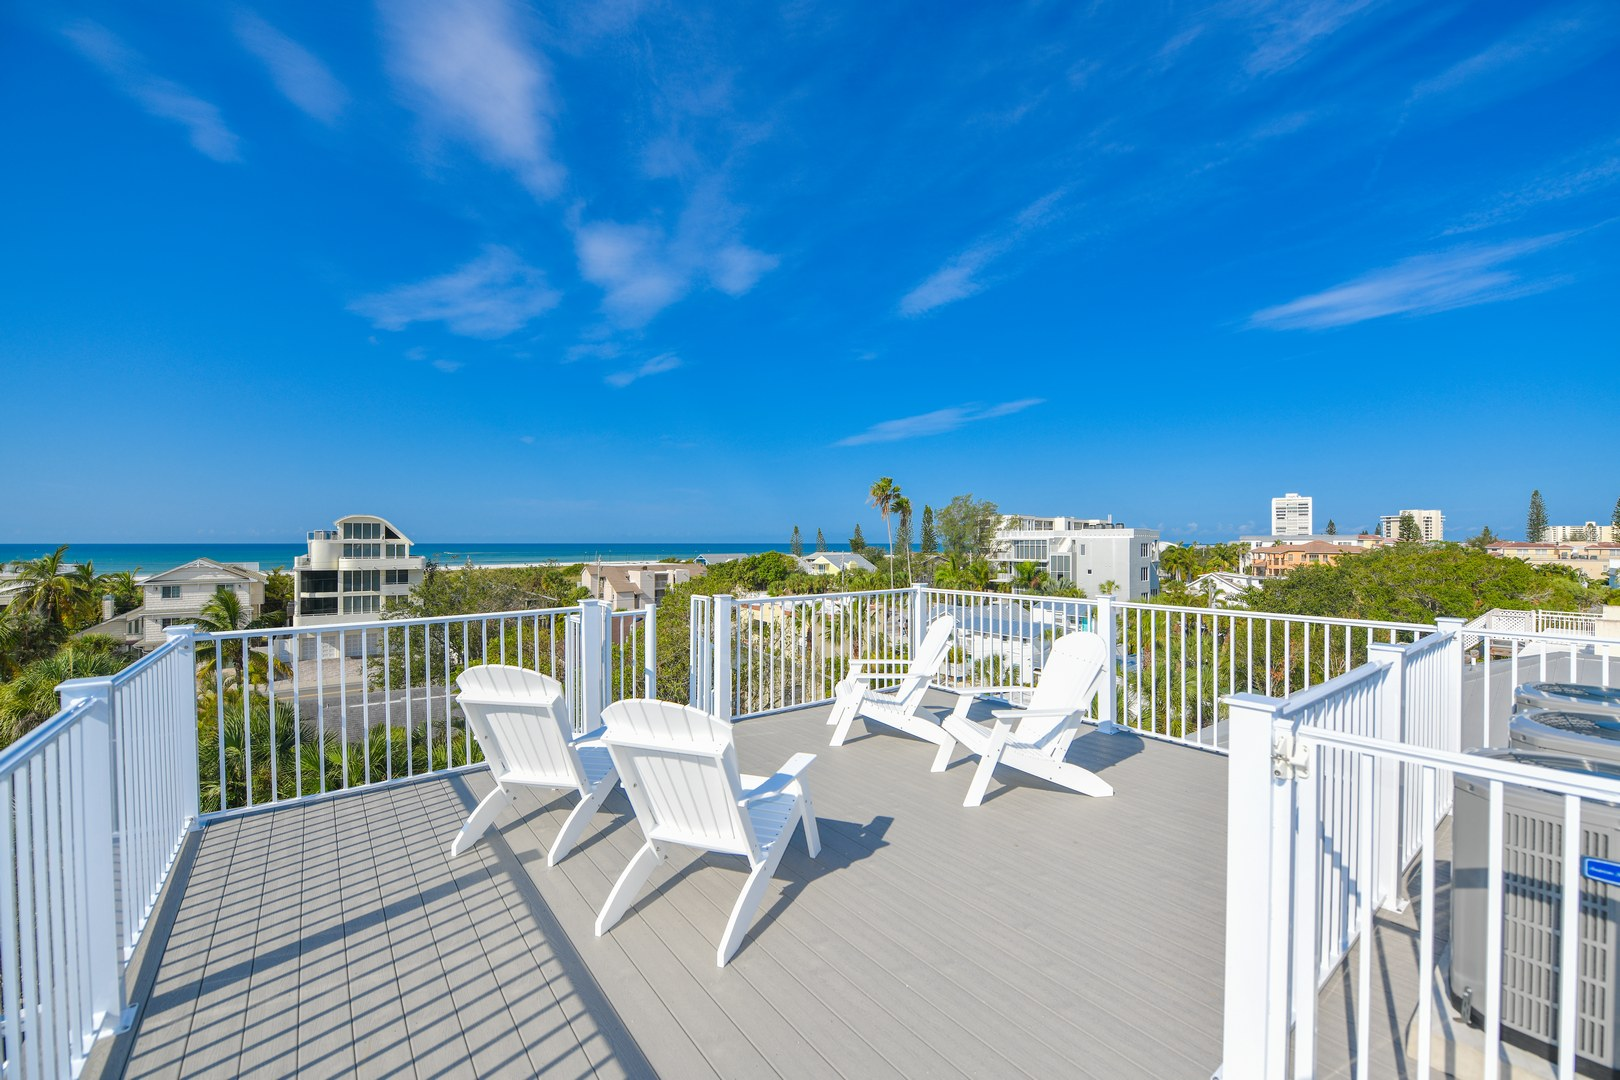 Roof Top Deck - Awesome Sunset, Gulf, and Beach Views